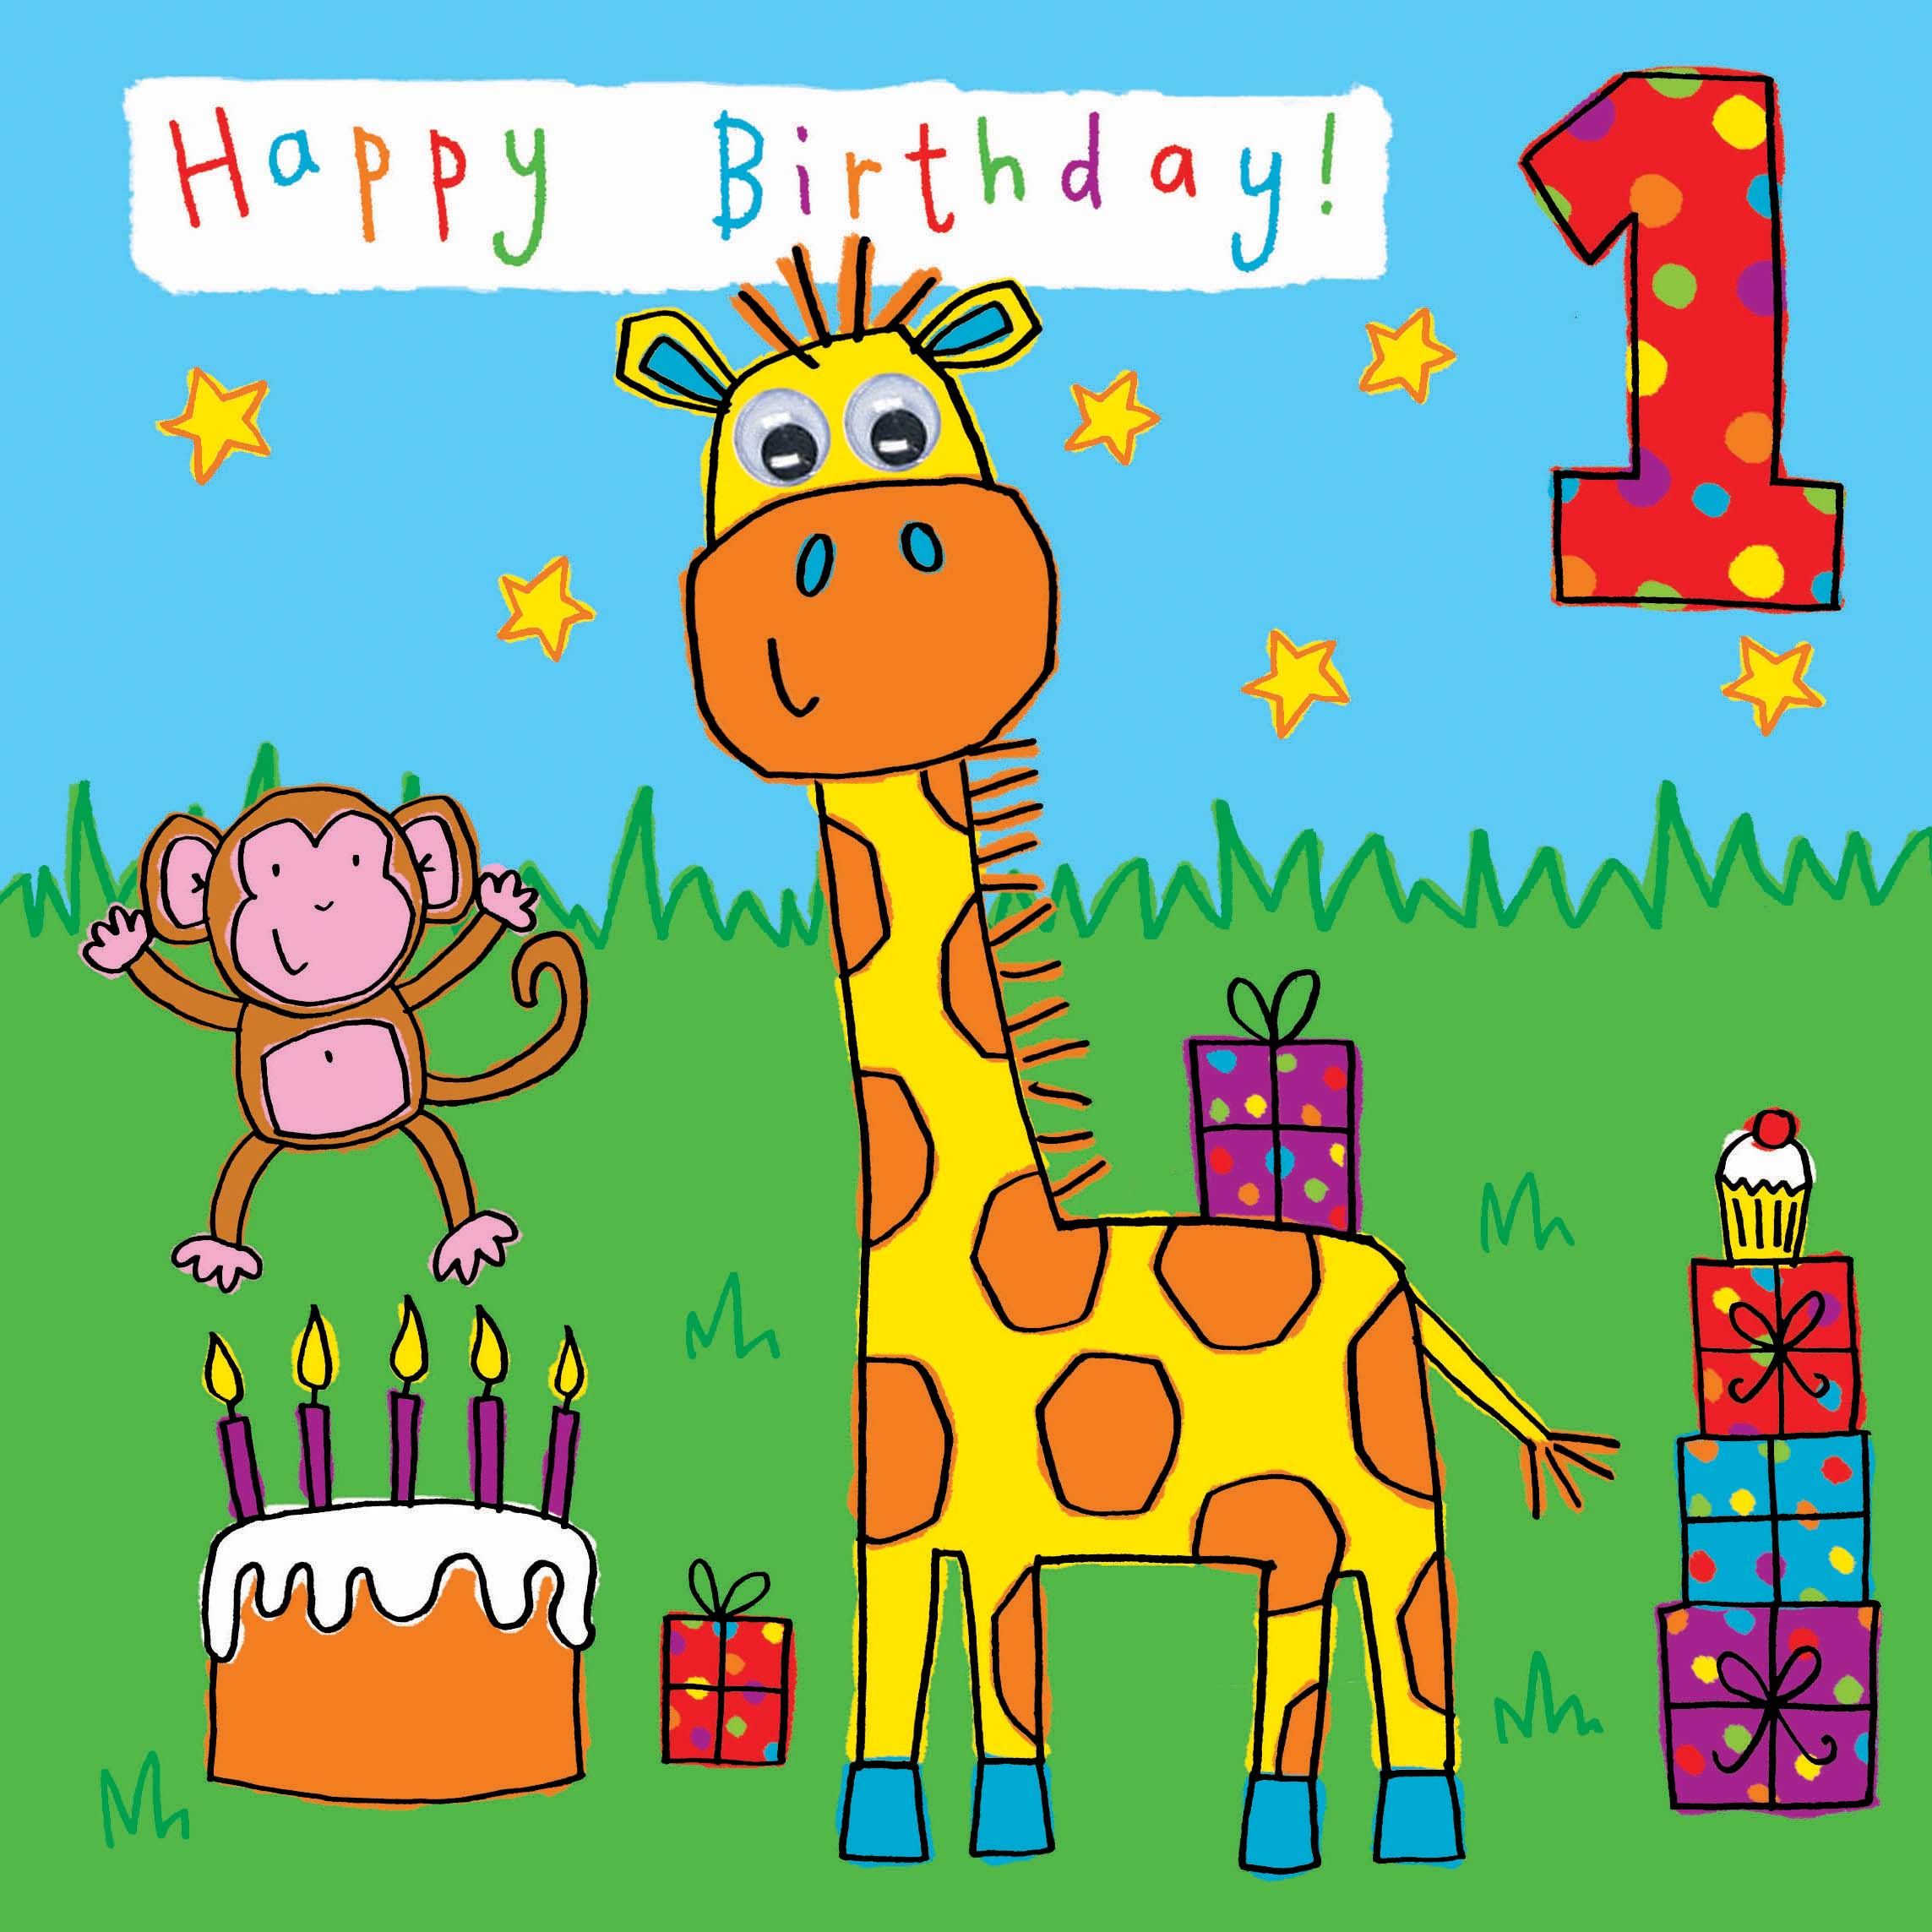 Kids cards kids birthday cards kristyandbryce Image collections